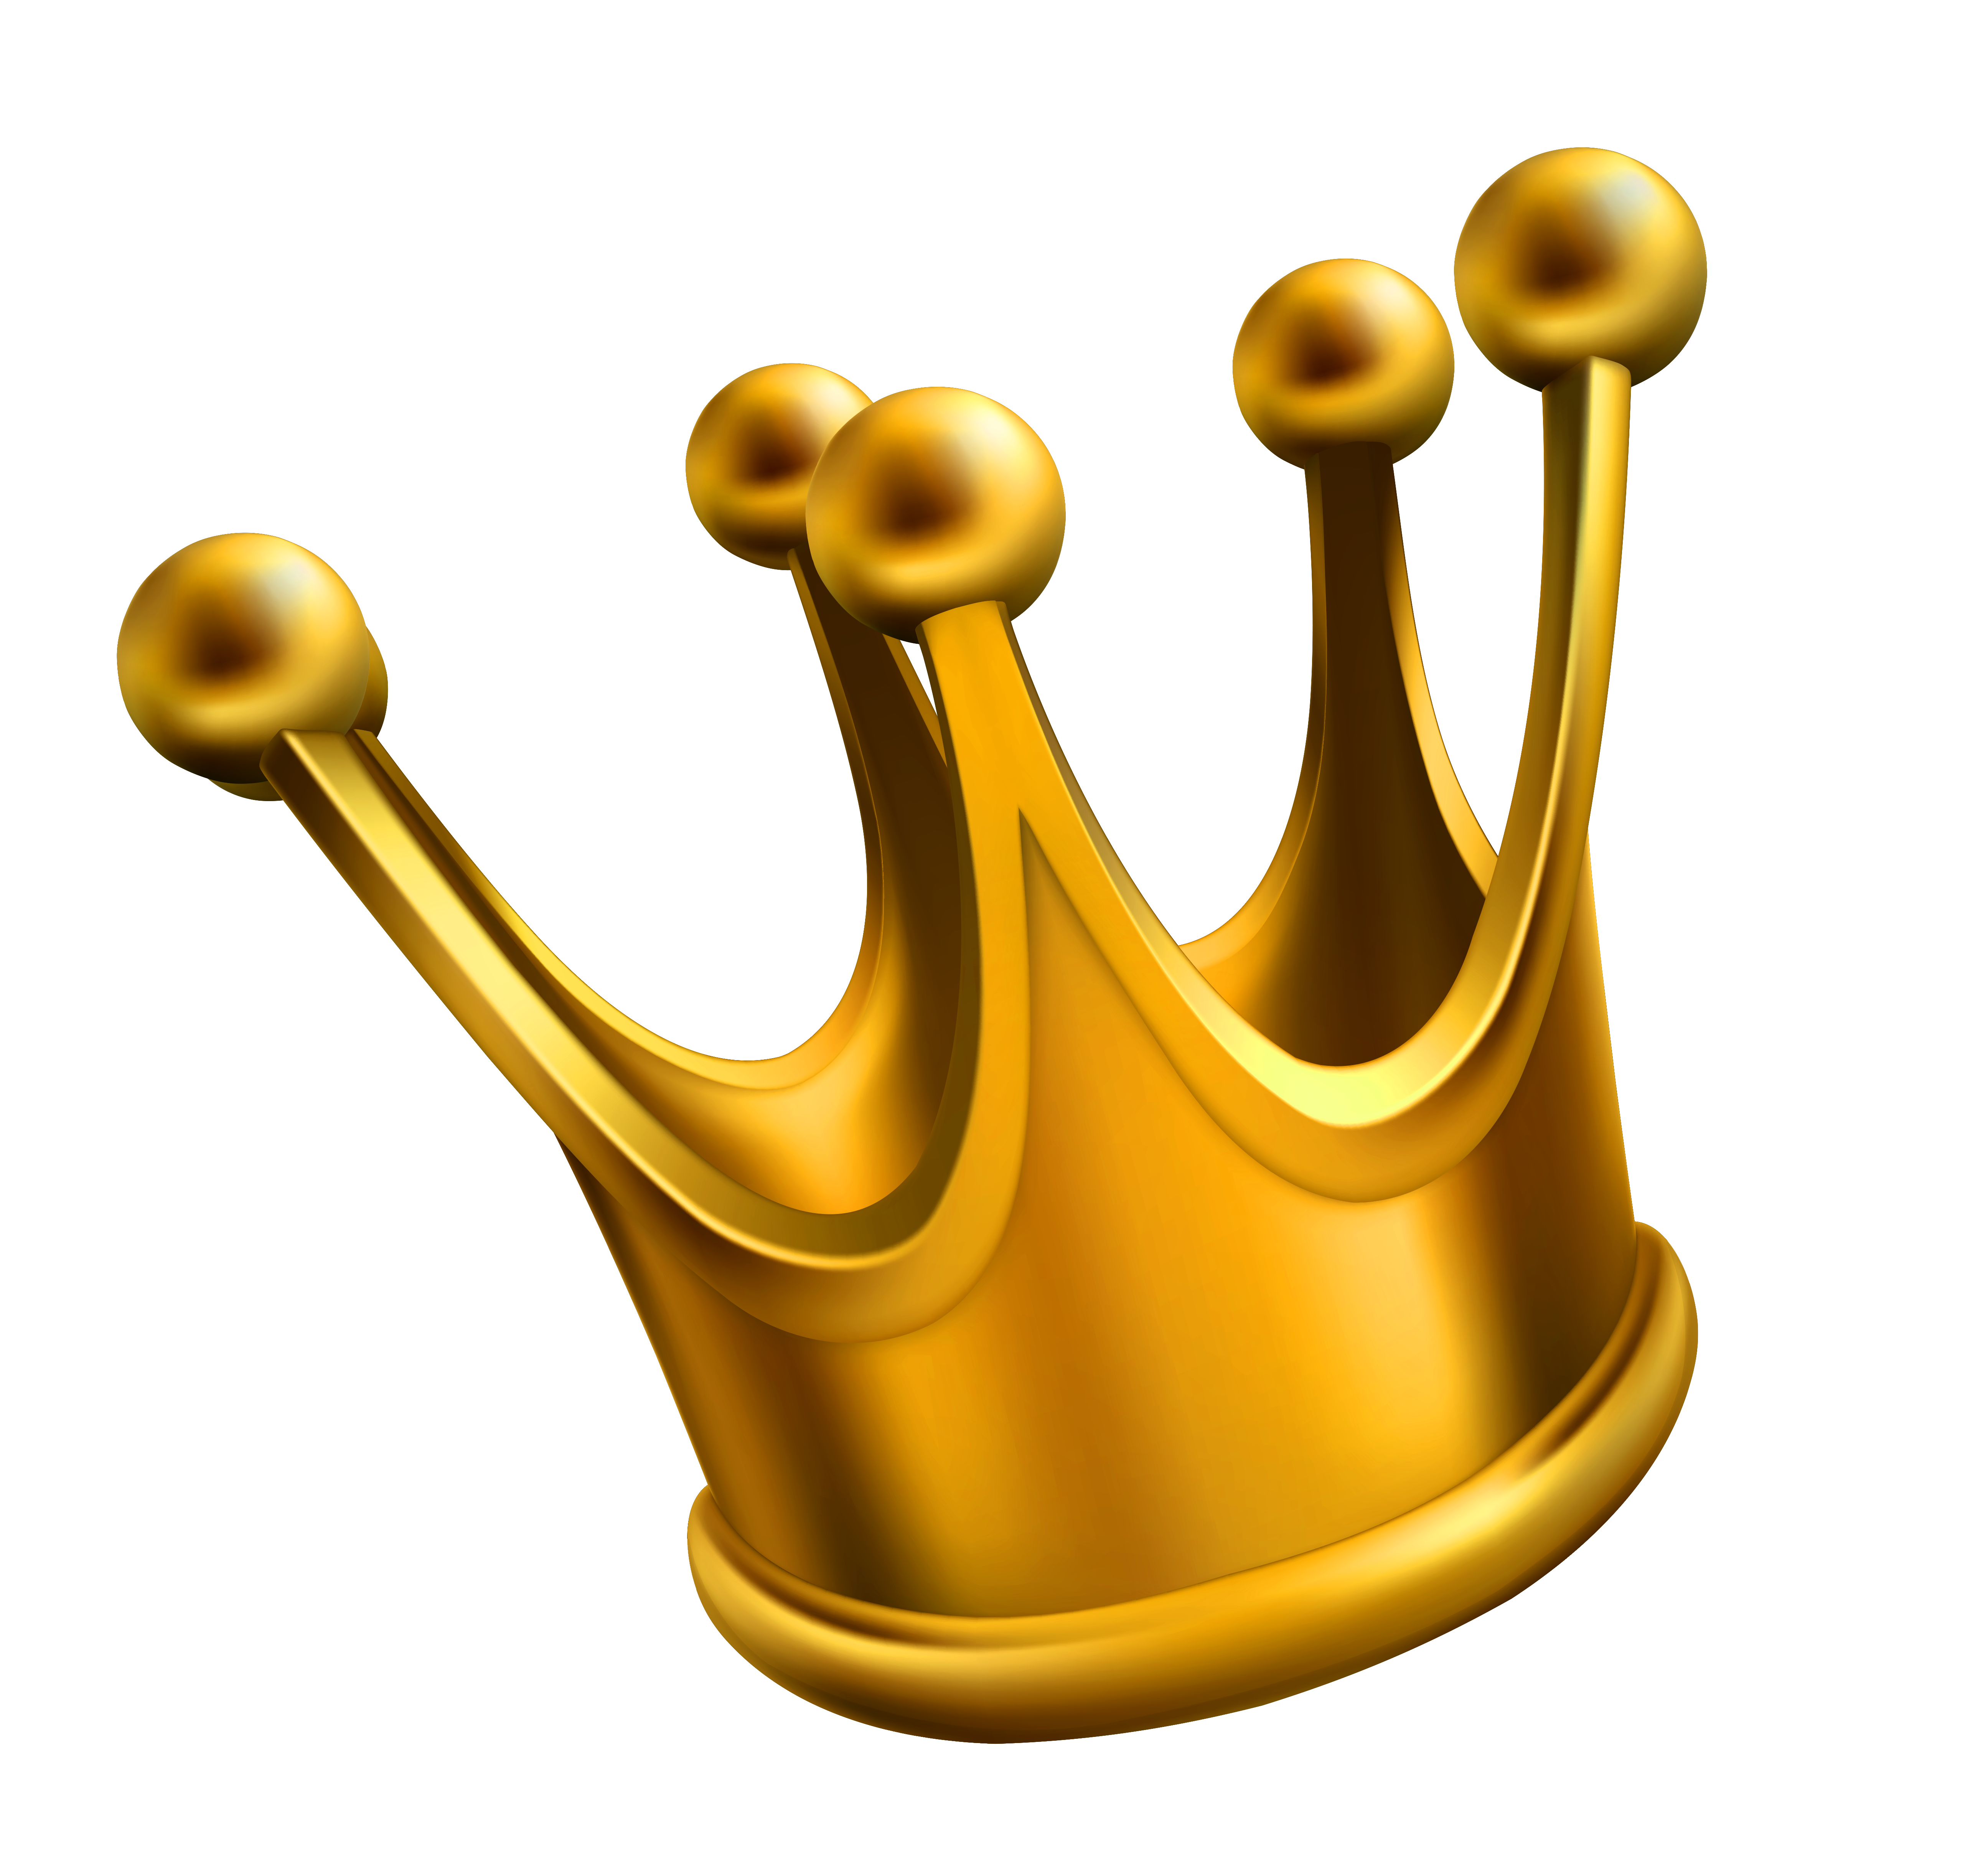 Crowns clipart yellow. Golden crown png picture